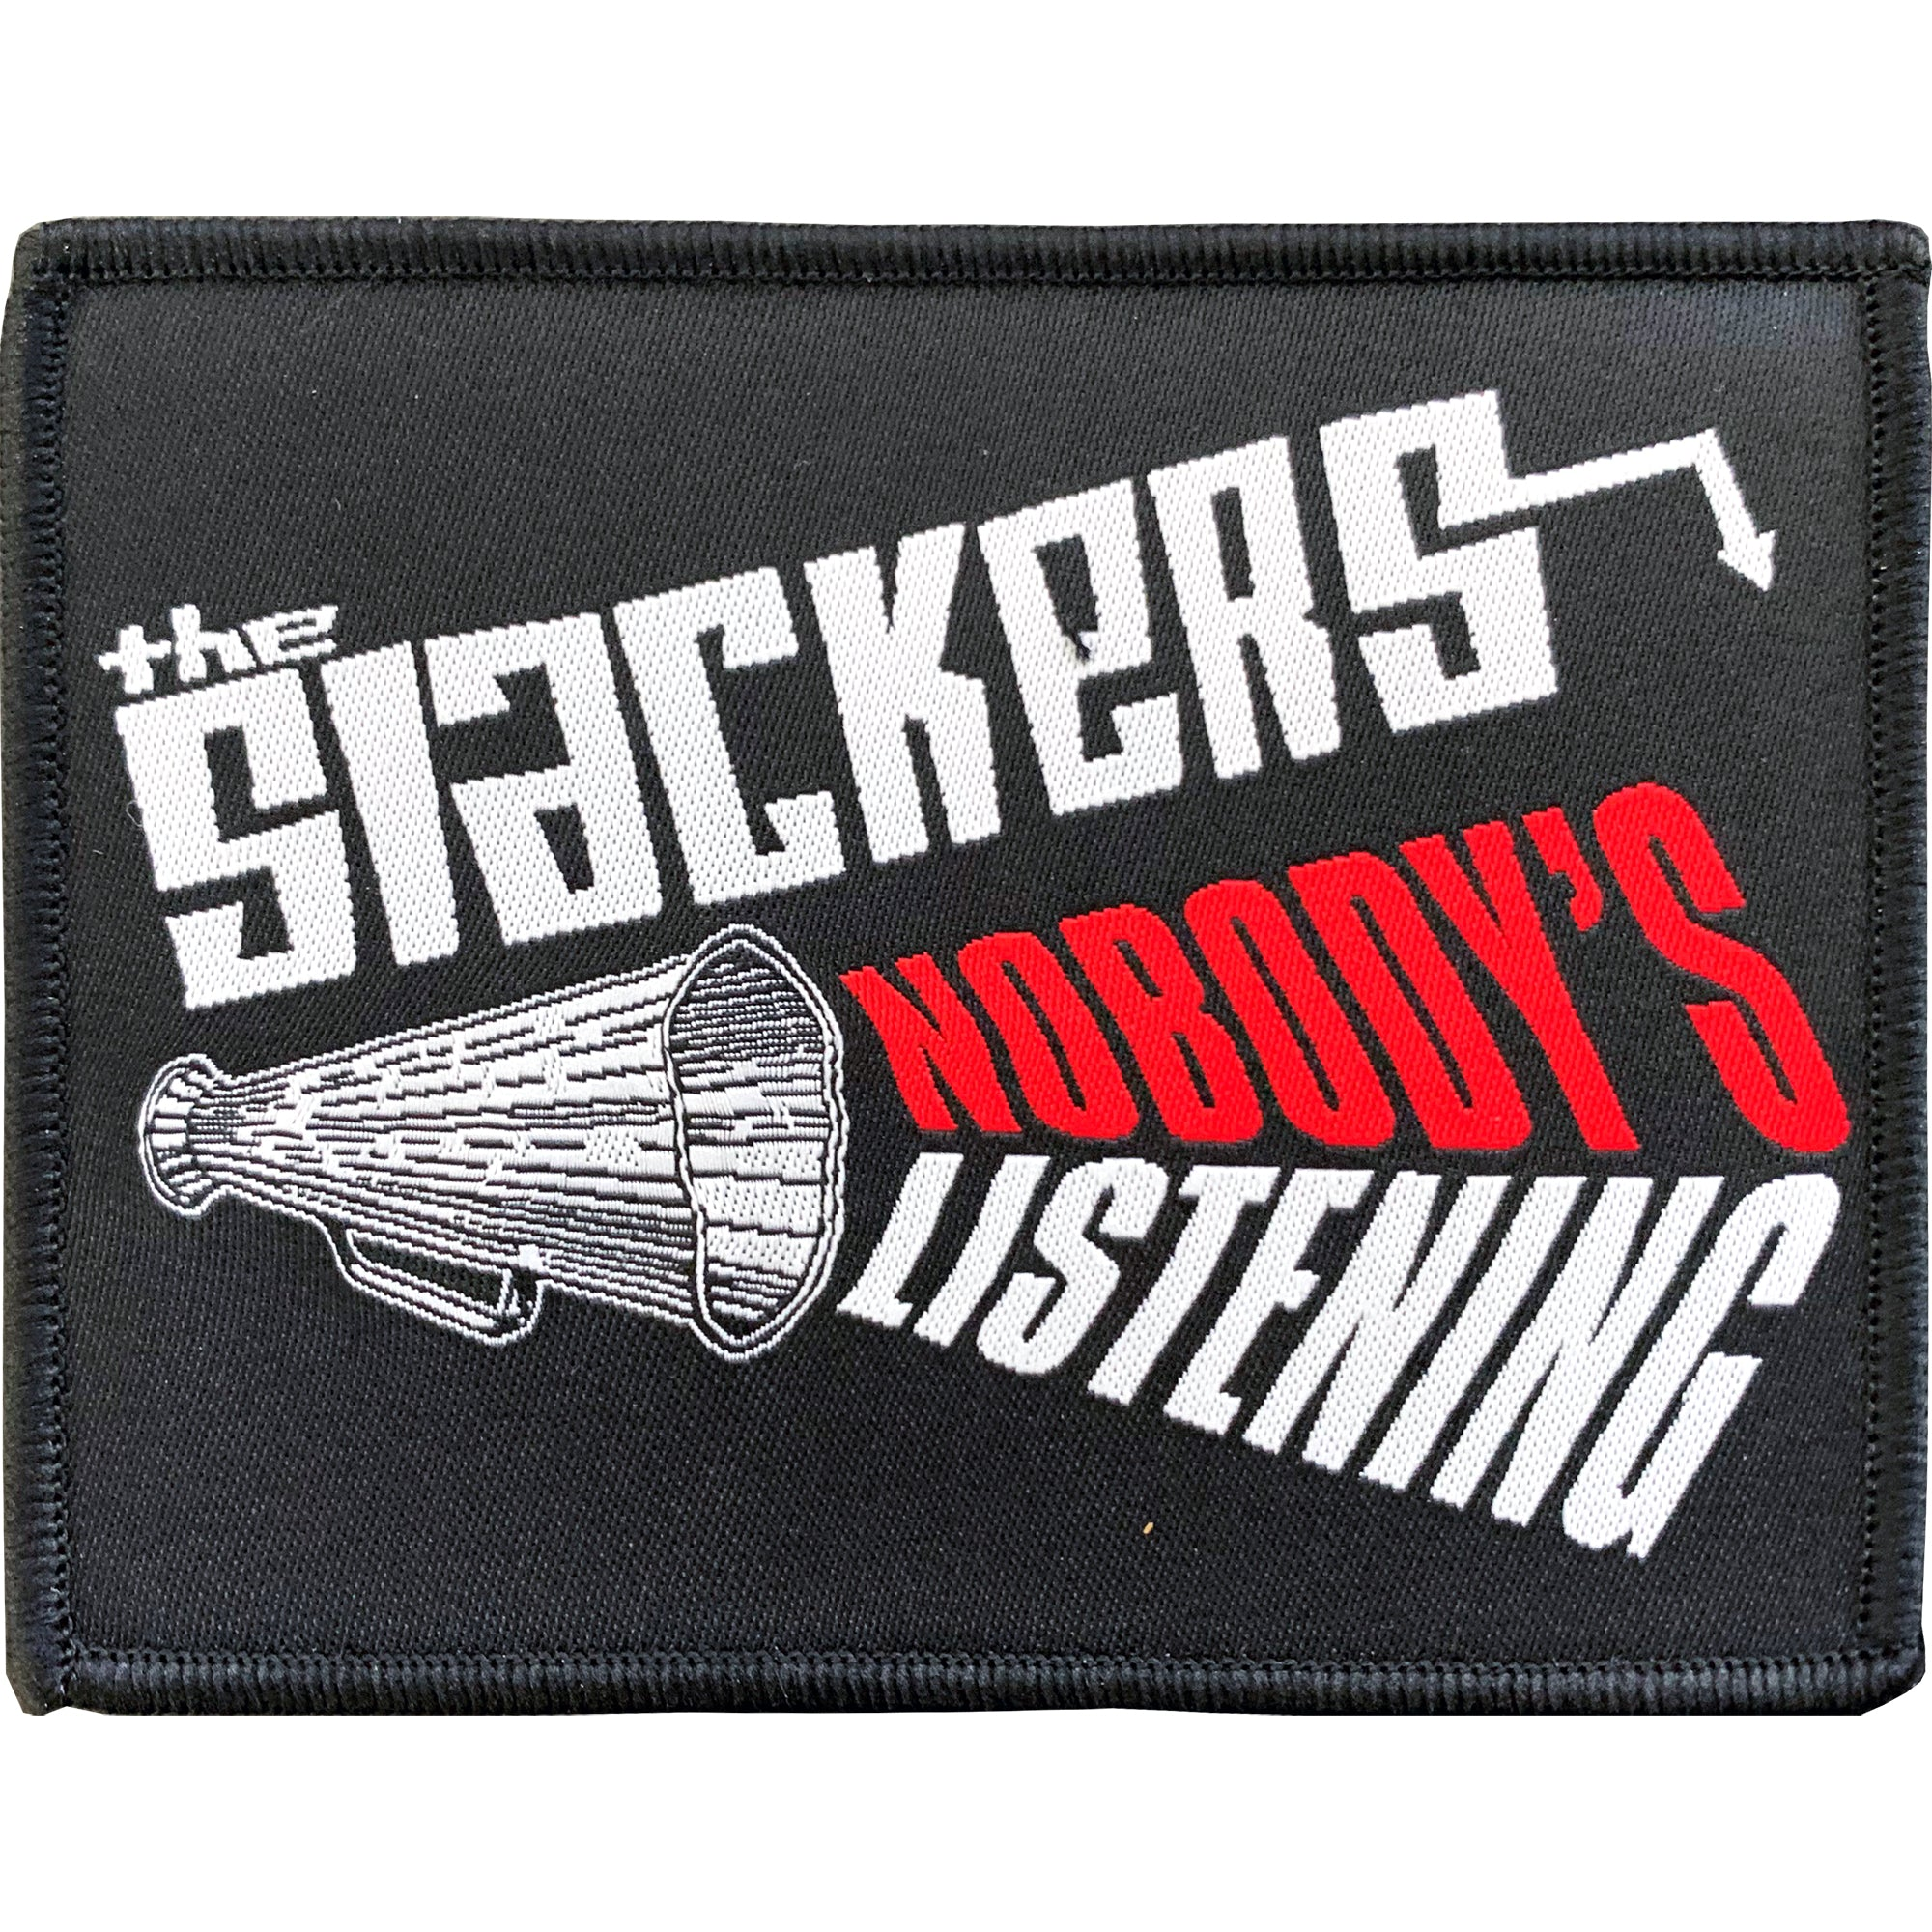 "The Slackers - Nobody's Listening - Patch - Woven - 3"" x 4"""